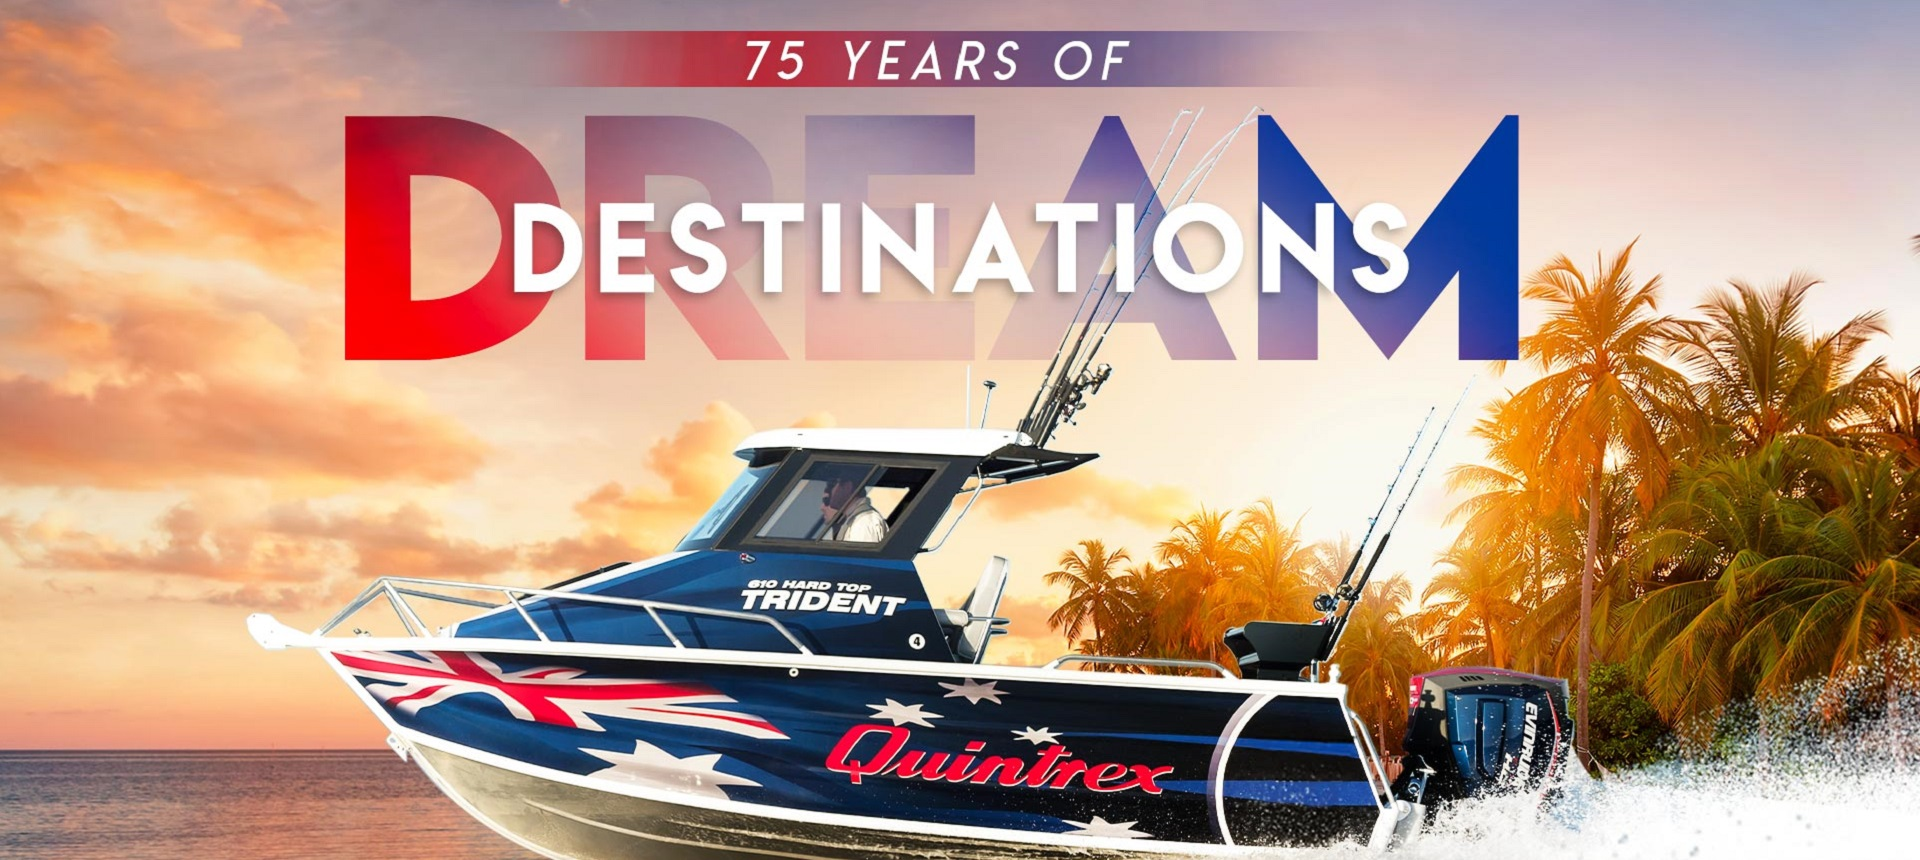 75 Years of Dream Destinations with Quintrex